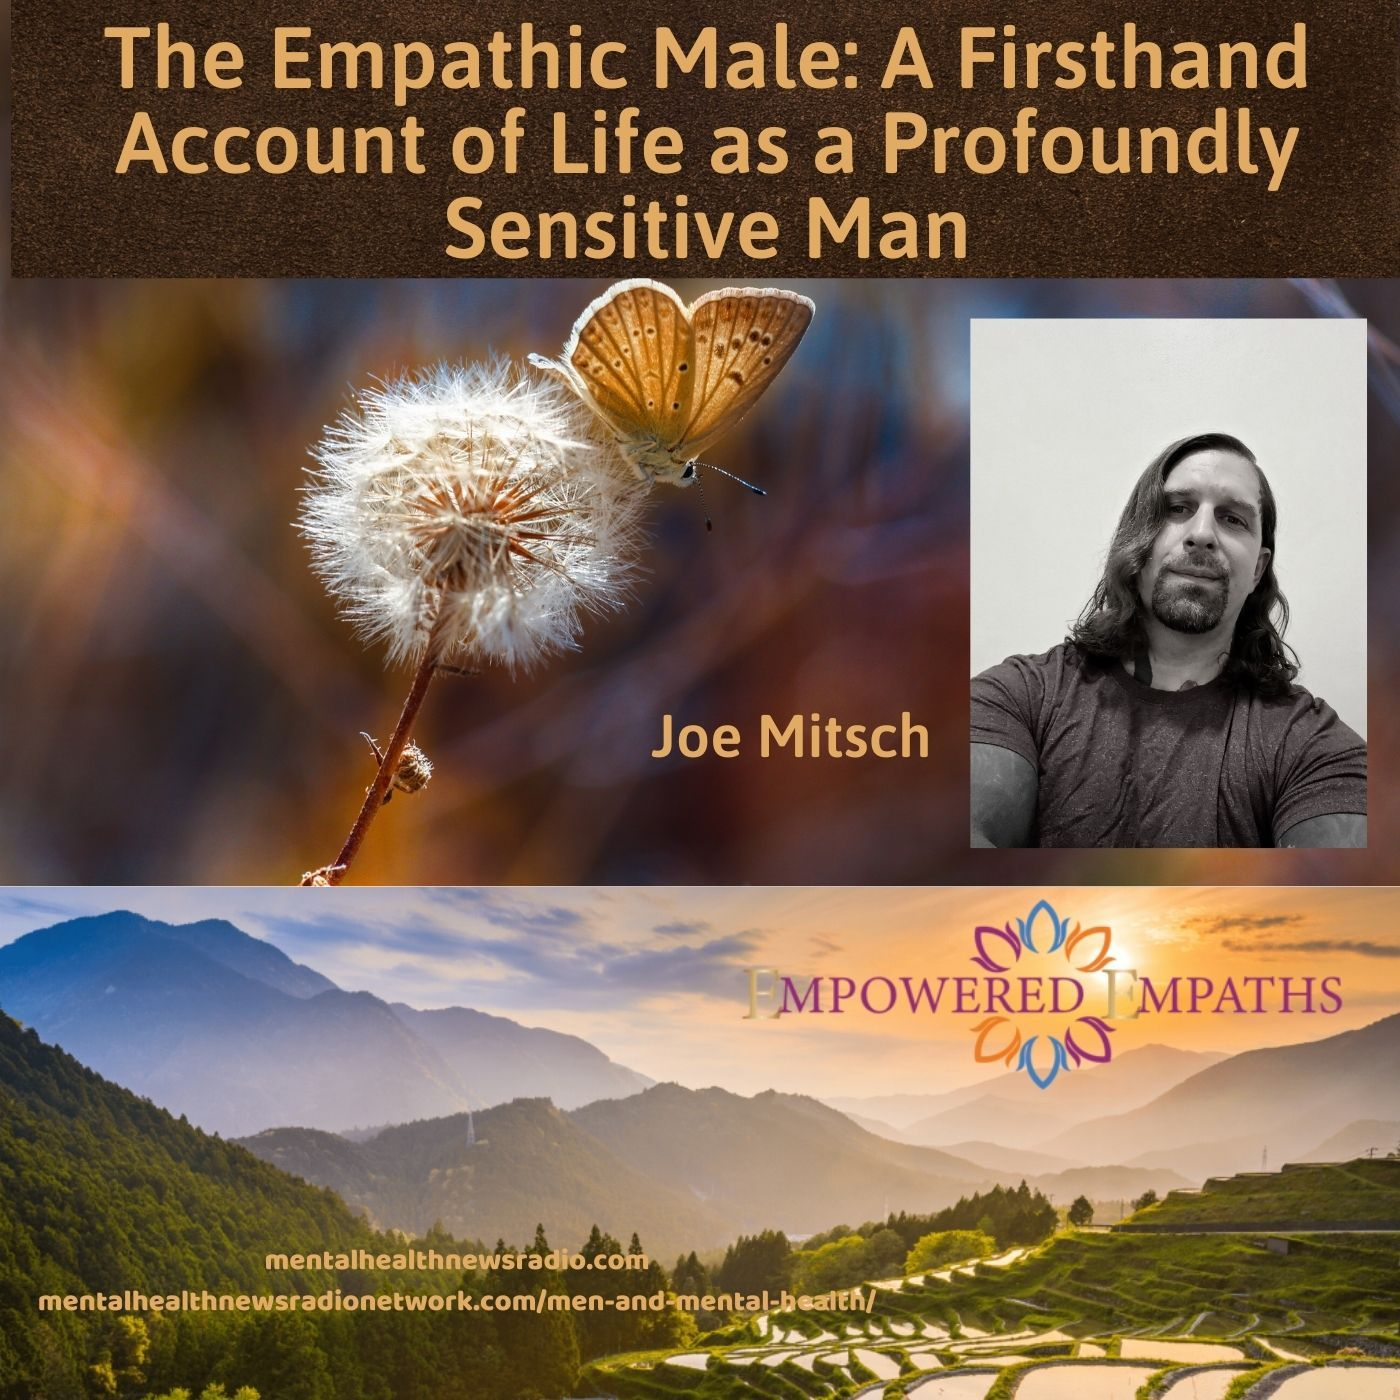 The Empathic Male: A Firsthand Account of Life as a Profoundly Sensitive Man